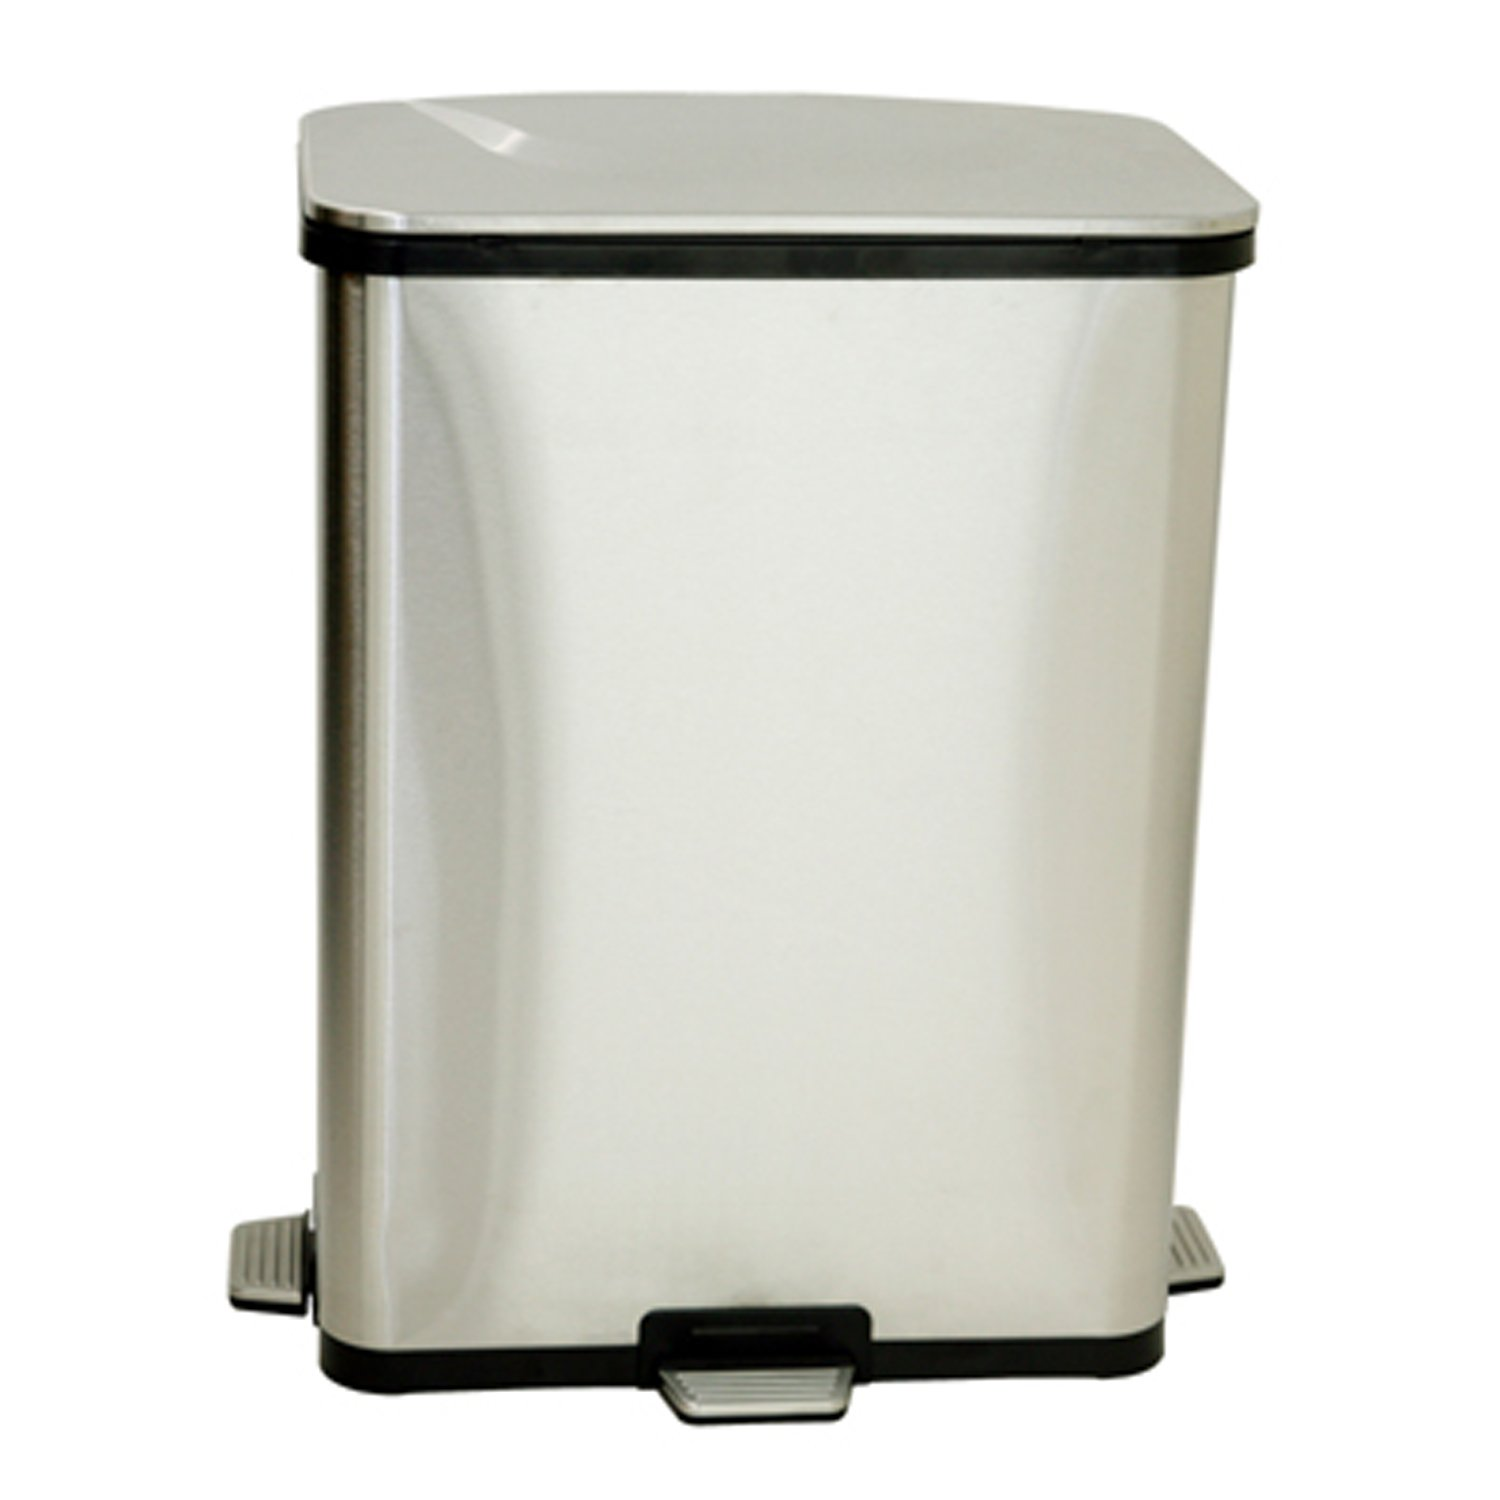 Amazon.com: ITouchless 13 Gallon Step Sensor Stainless Steel Trash Can,  Automatic Kitchen Trash Can With Unique Pedal Sensor Technology And  Deodorizer: Home ...